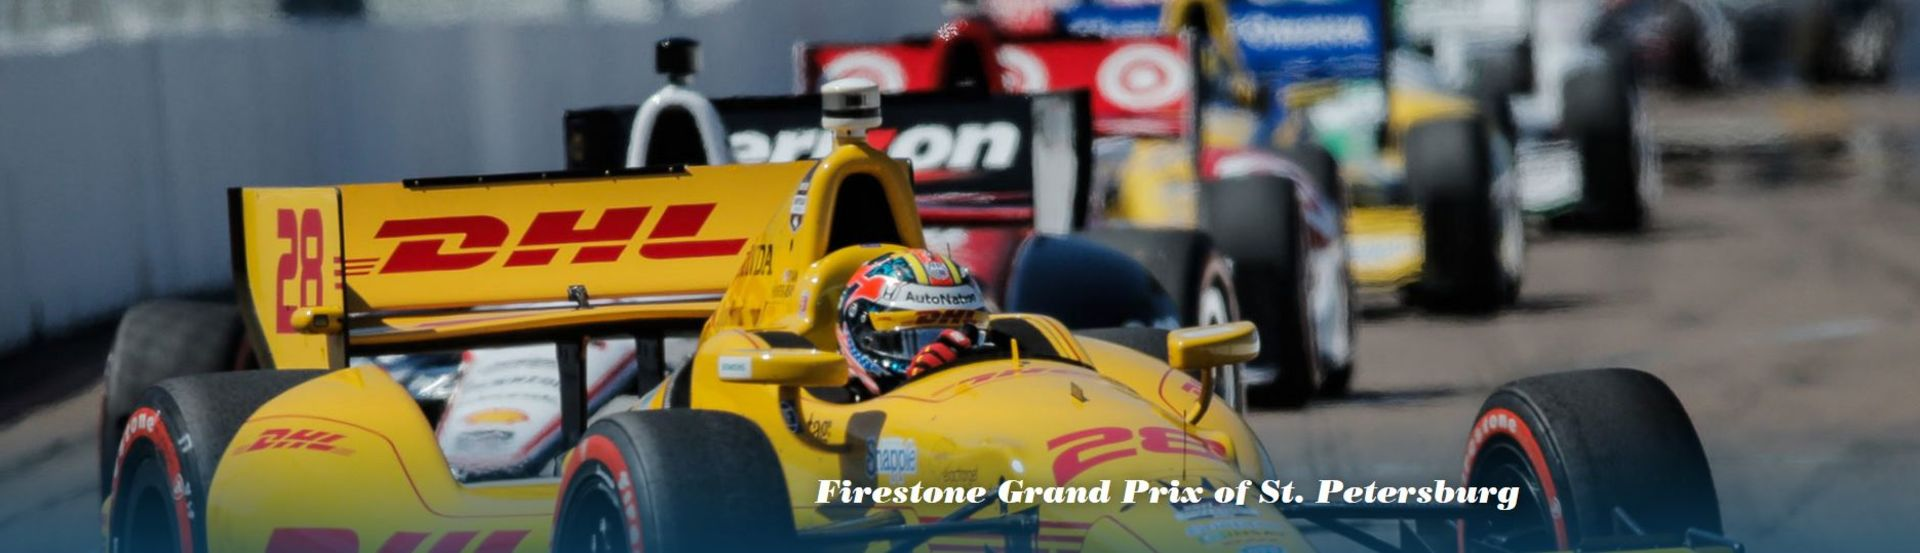 DOWNTOWN ST. PETE PREPARES FOR GRAND PRIX! – HOT EVENTS | GRAND PRIX RACE MARCH 10-12, 2017